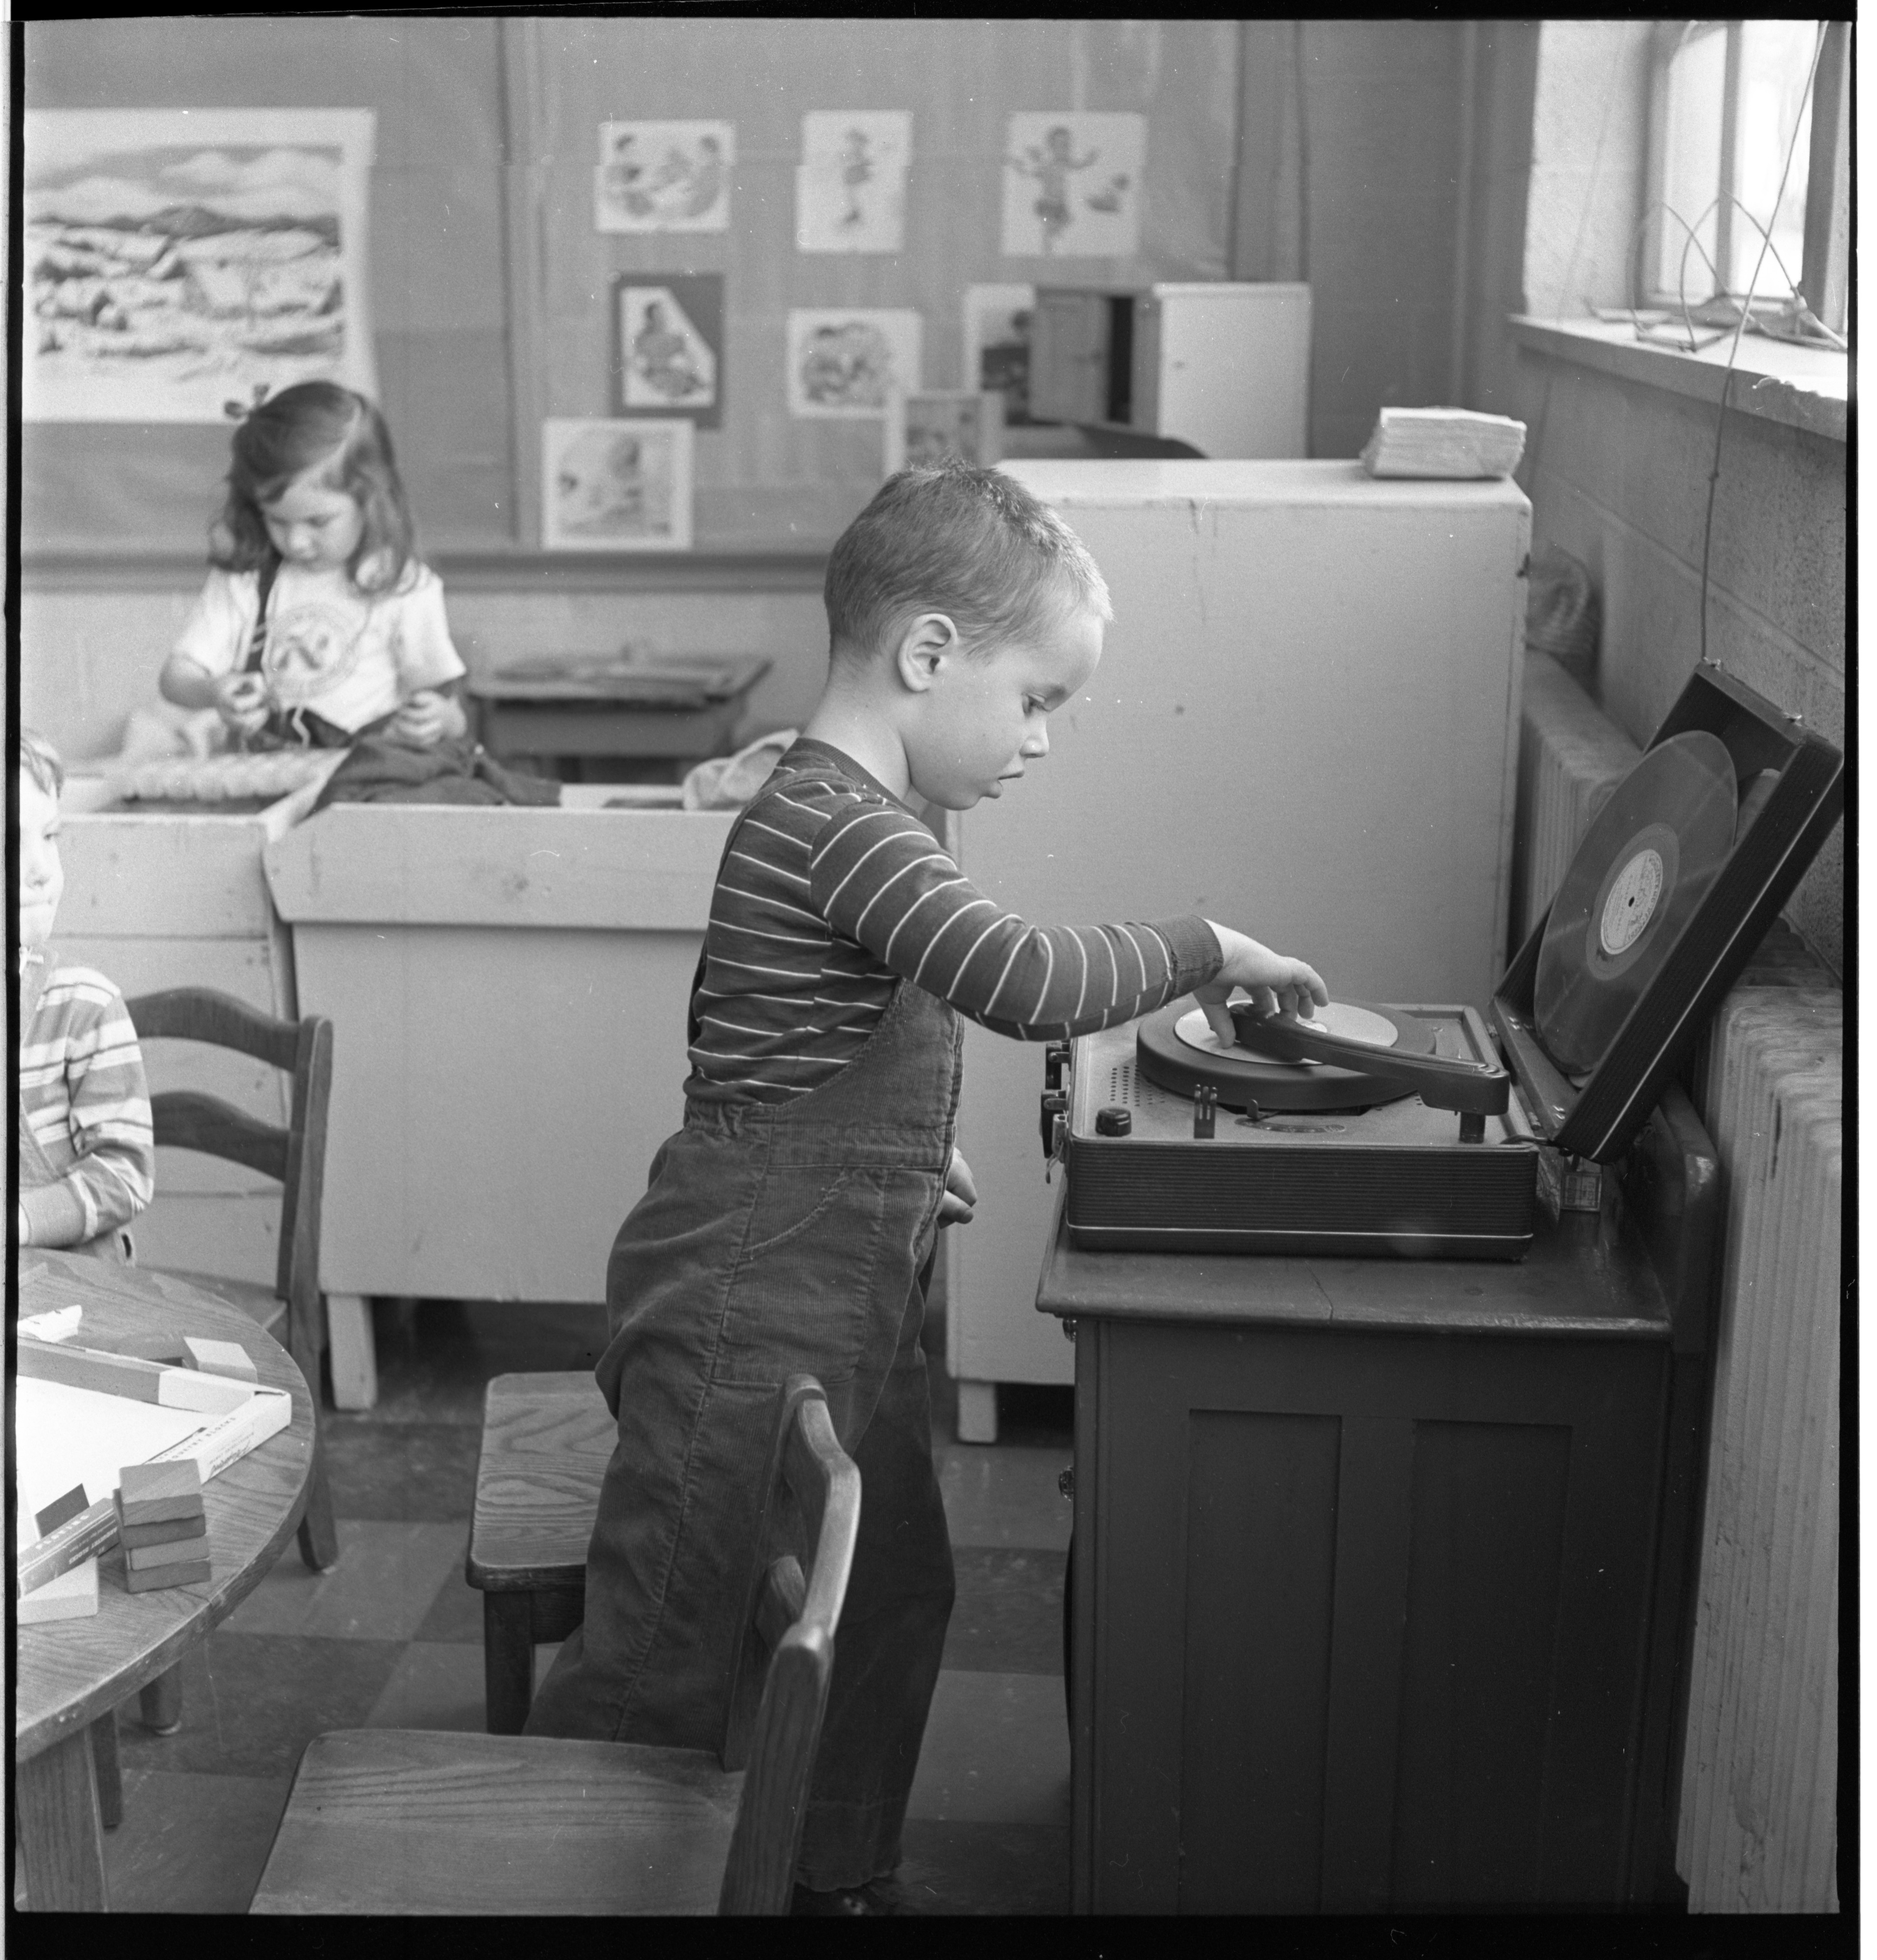 A Child Changes The Music On The Record Player At The Ann Arbor Co-Operative Nursery School, January 1955 image